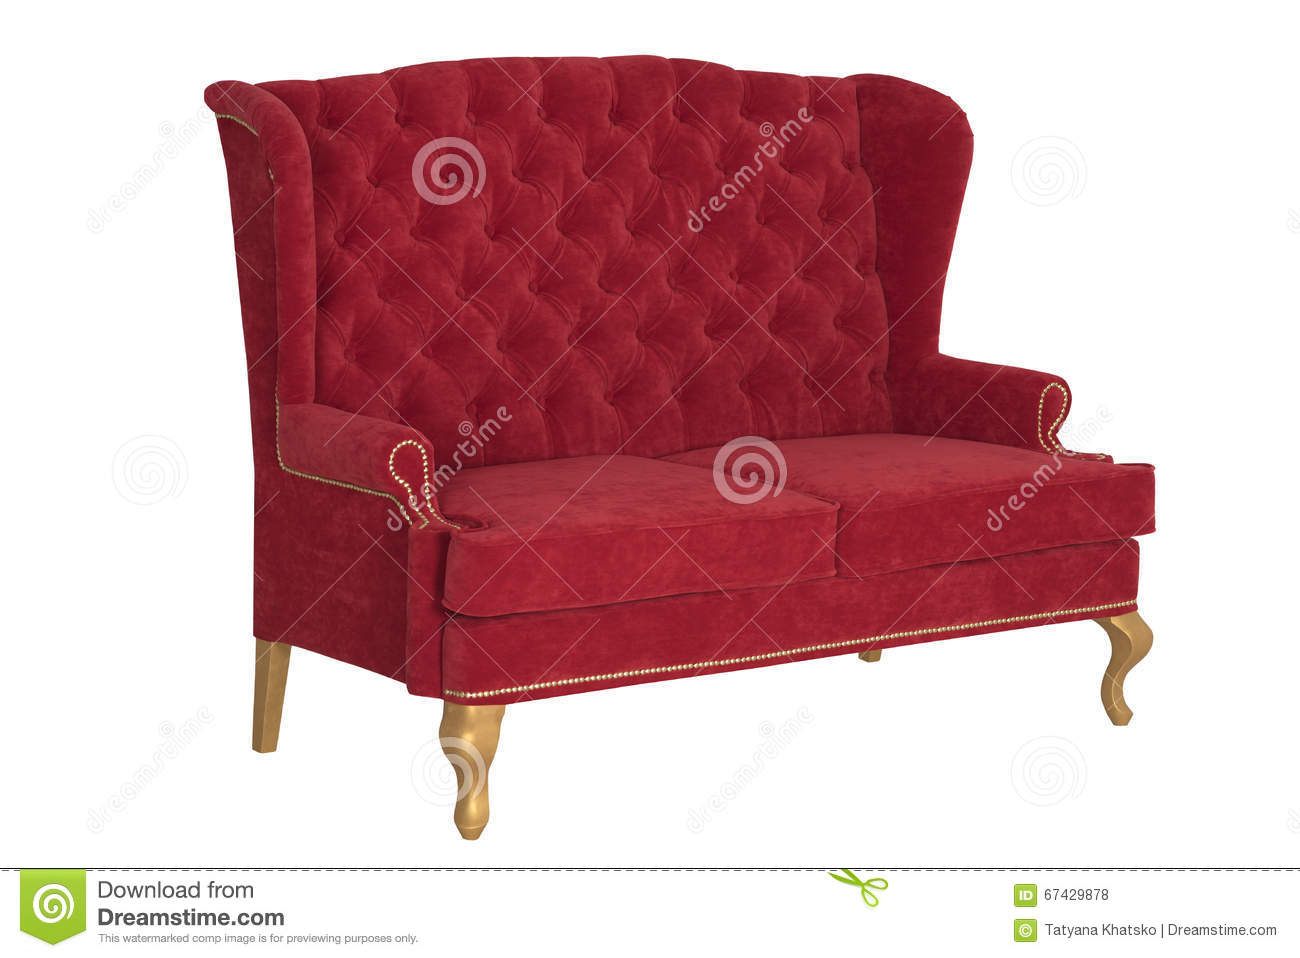 Sofa Chesterfield From A Red Velvet Stock Photo Image Of Gold